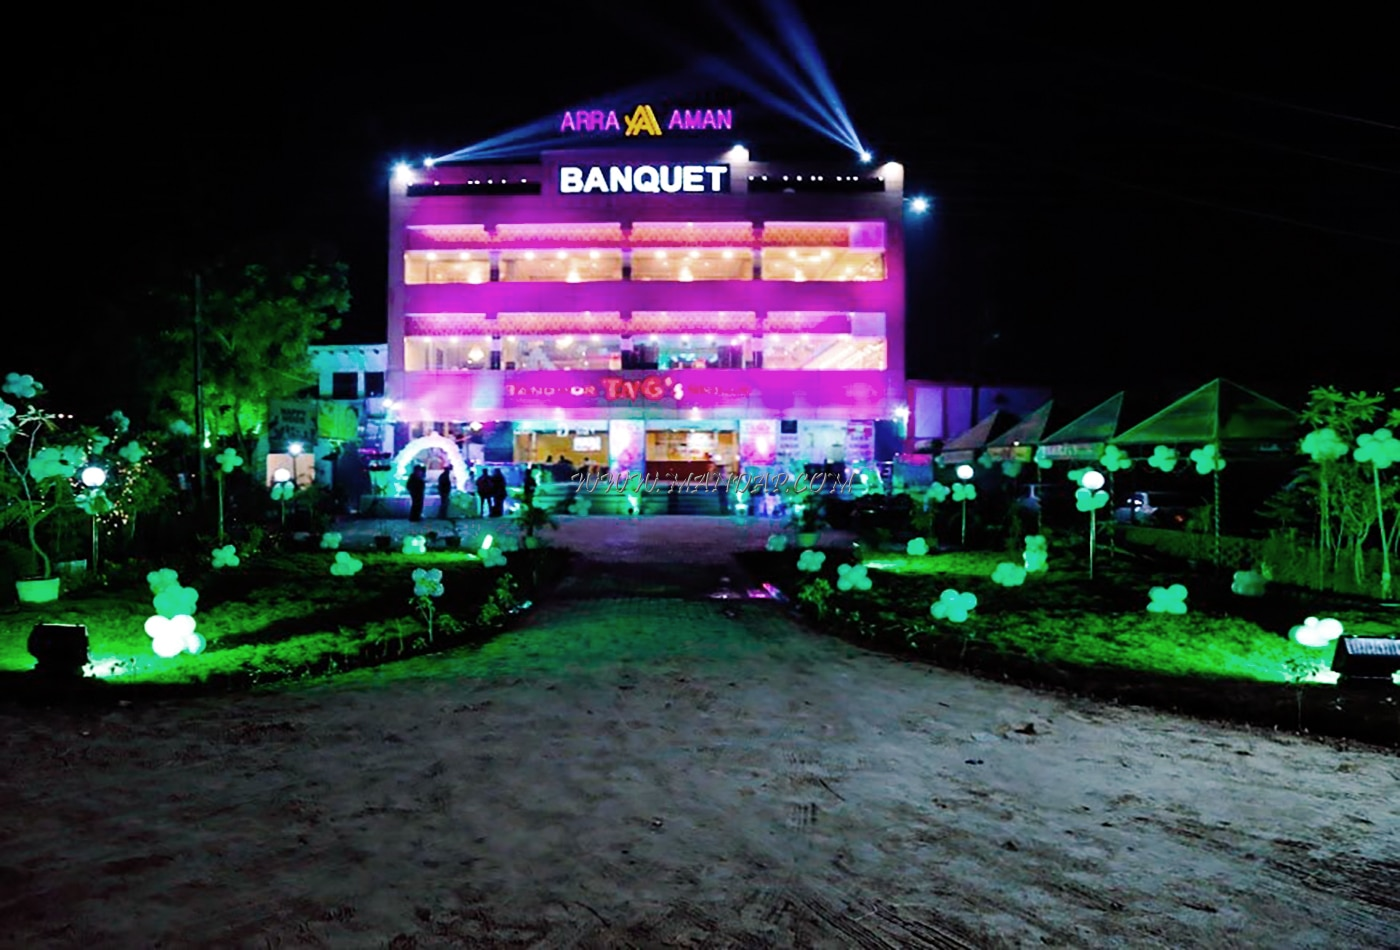 Find More Banquet Halls in Pandav Nagar